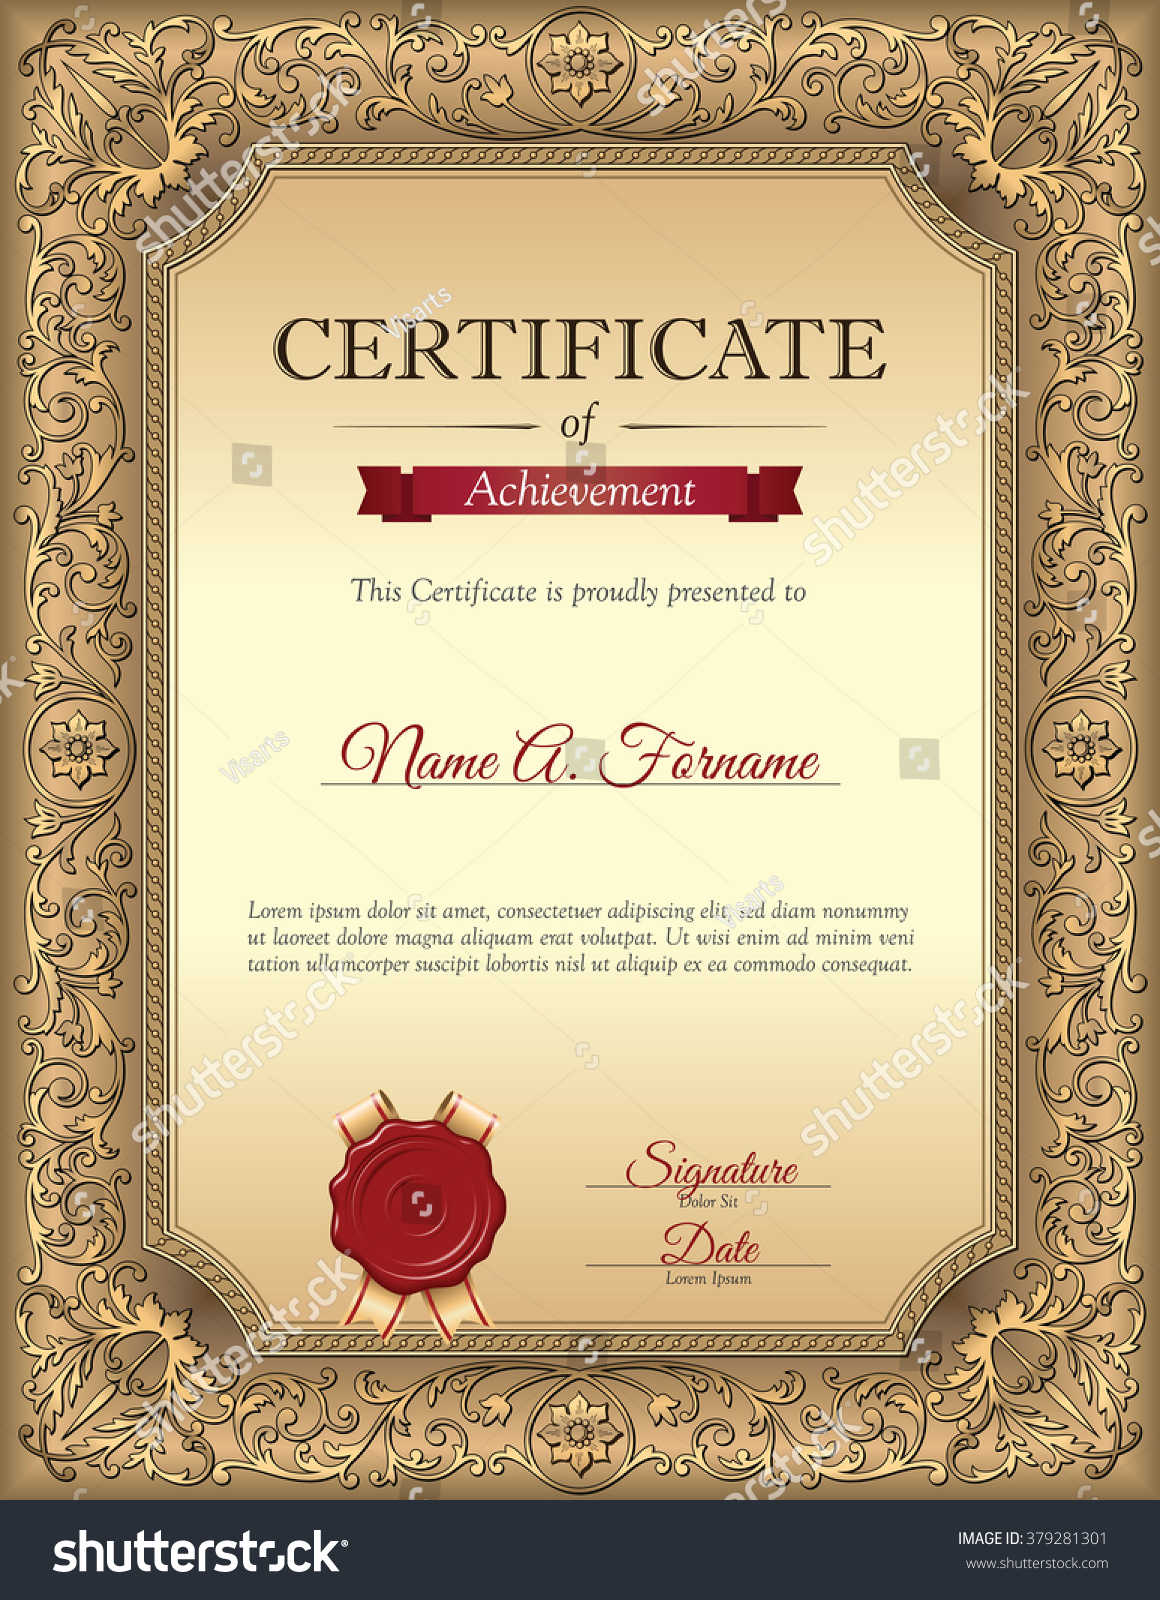 Certificate of Recognition Template with Vintage Floral Frame ...